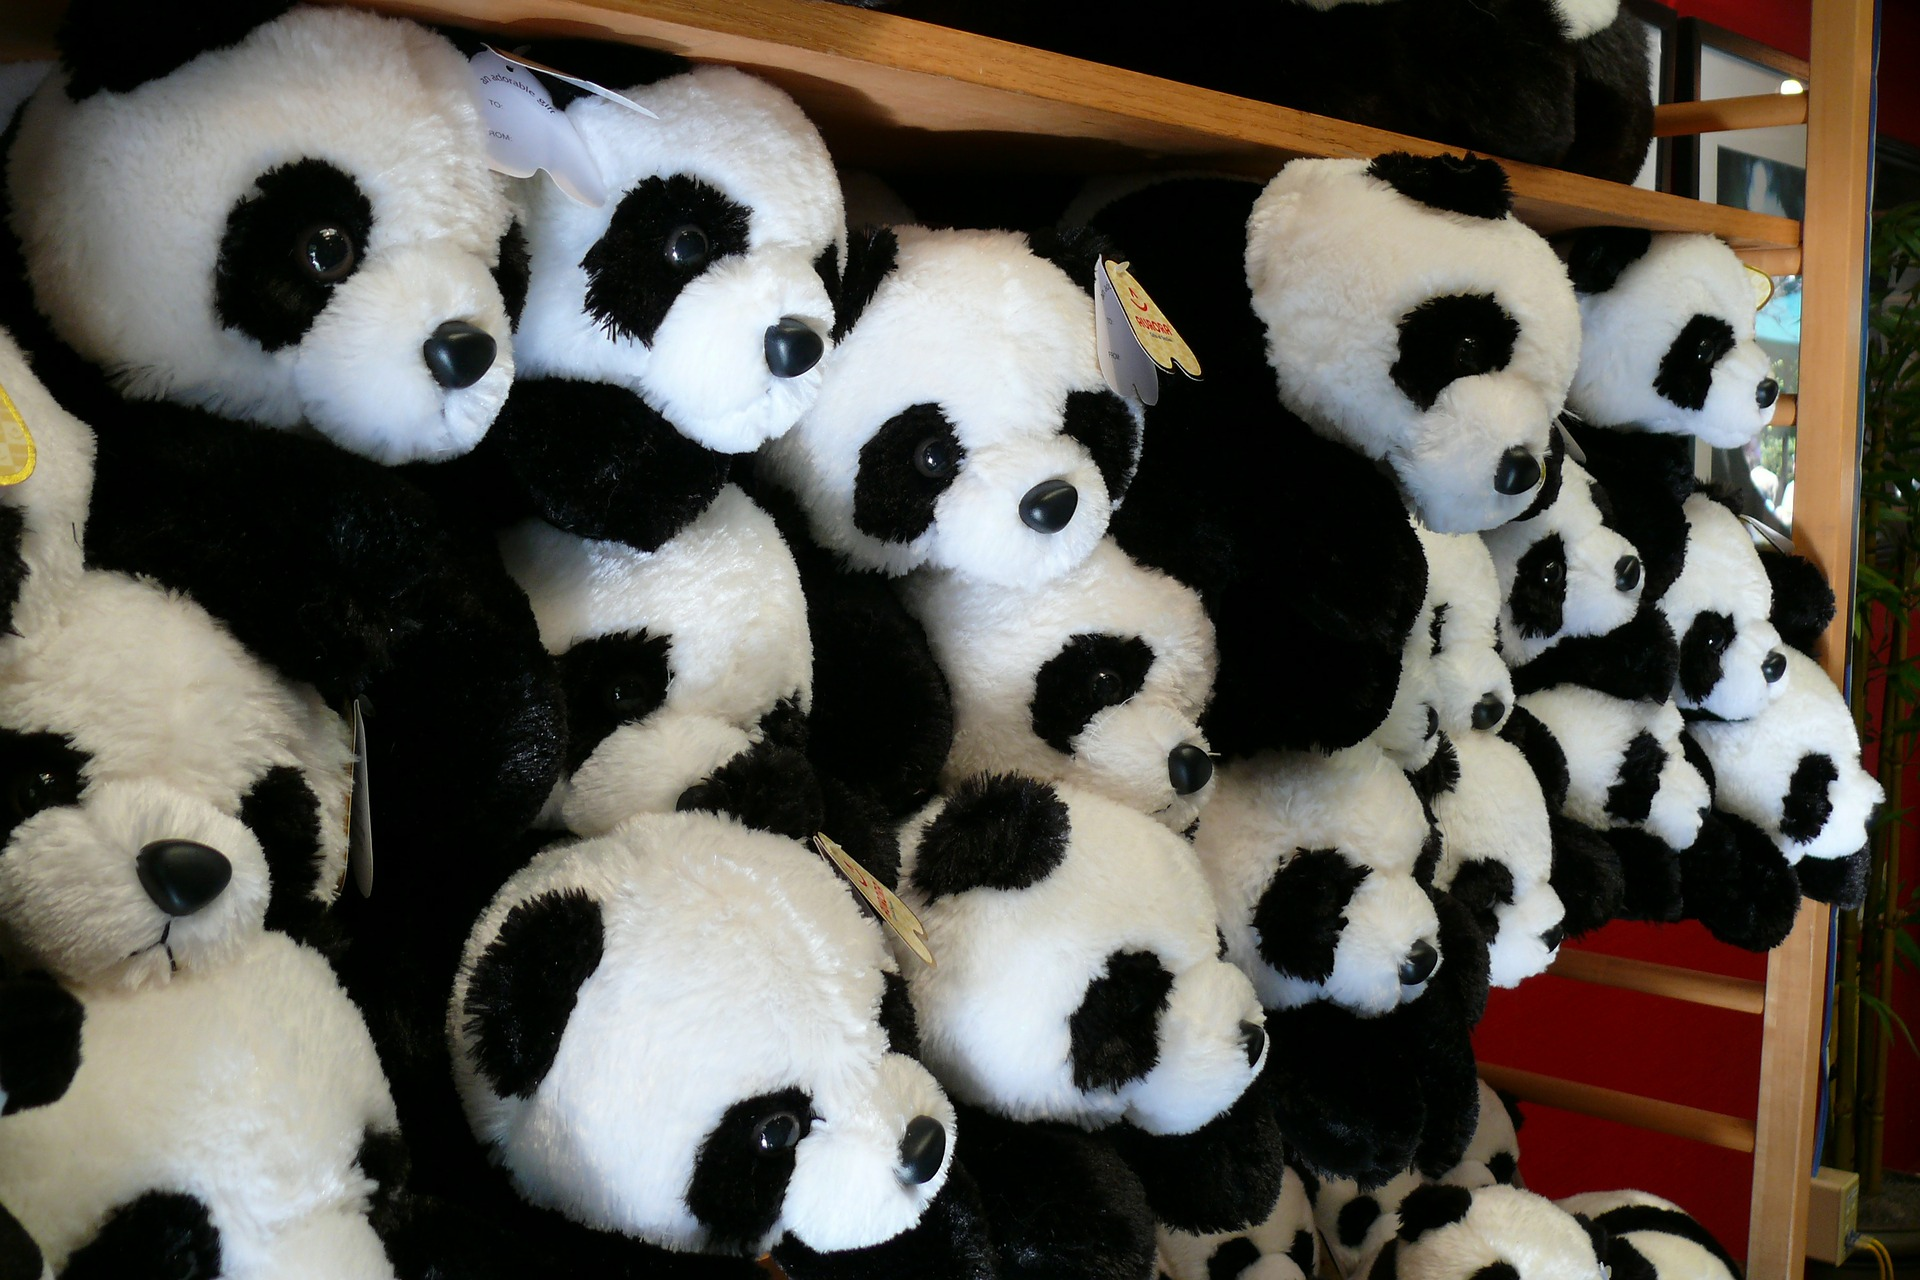 Stuffed Giant Pandas At The San Diego Zoo.